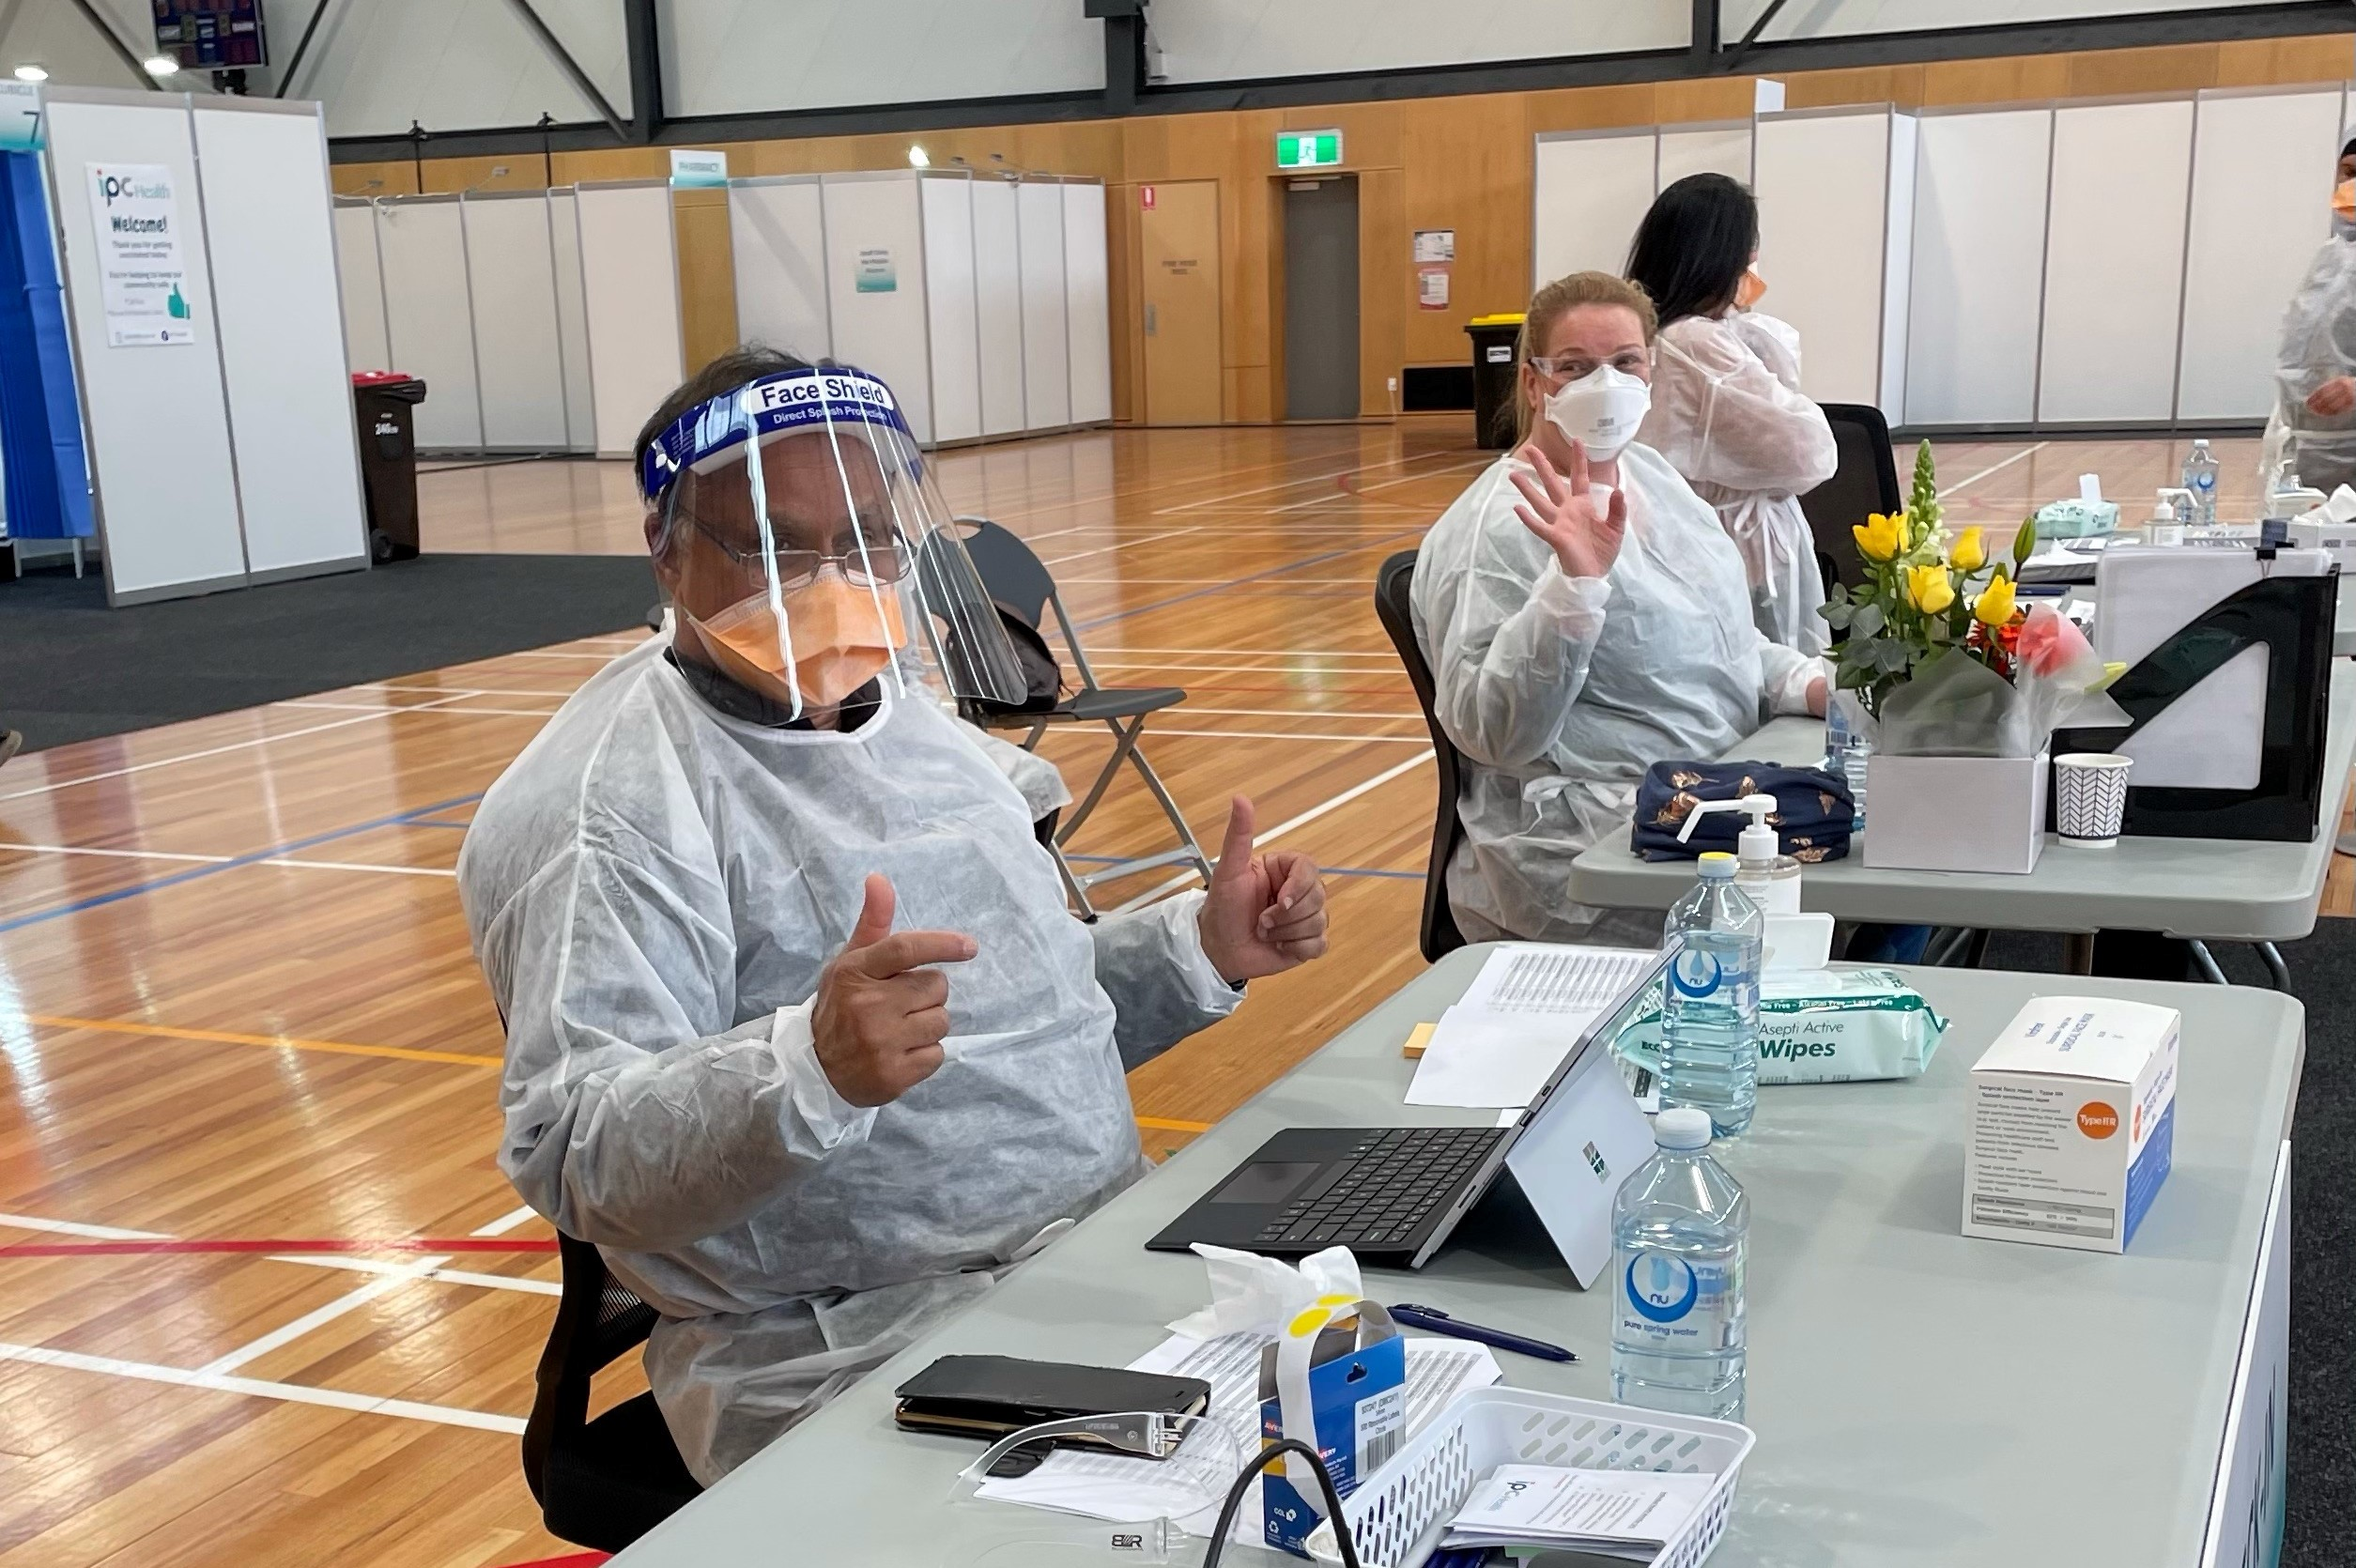 people in protective gear sitting at tables